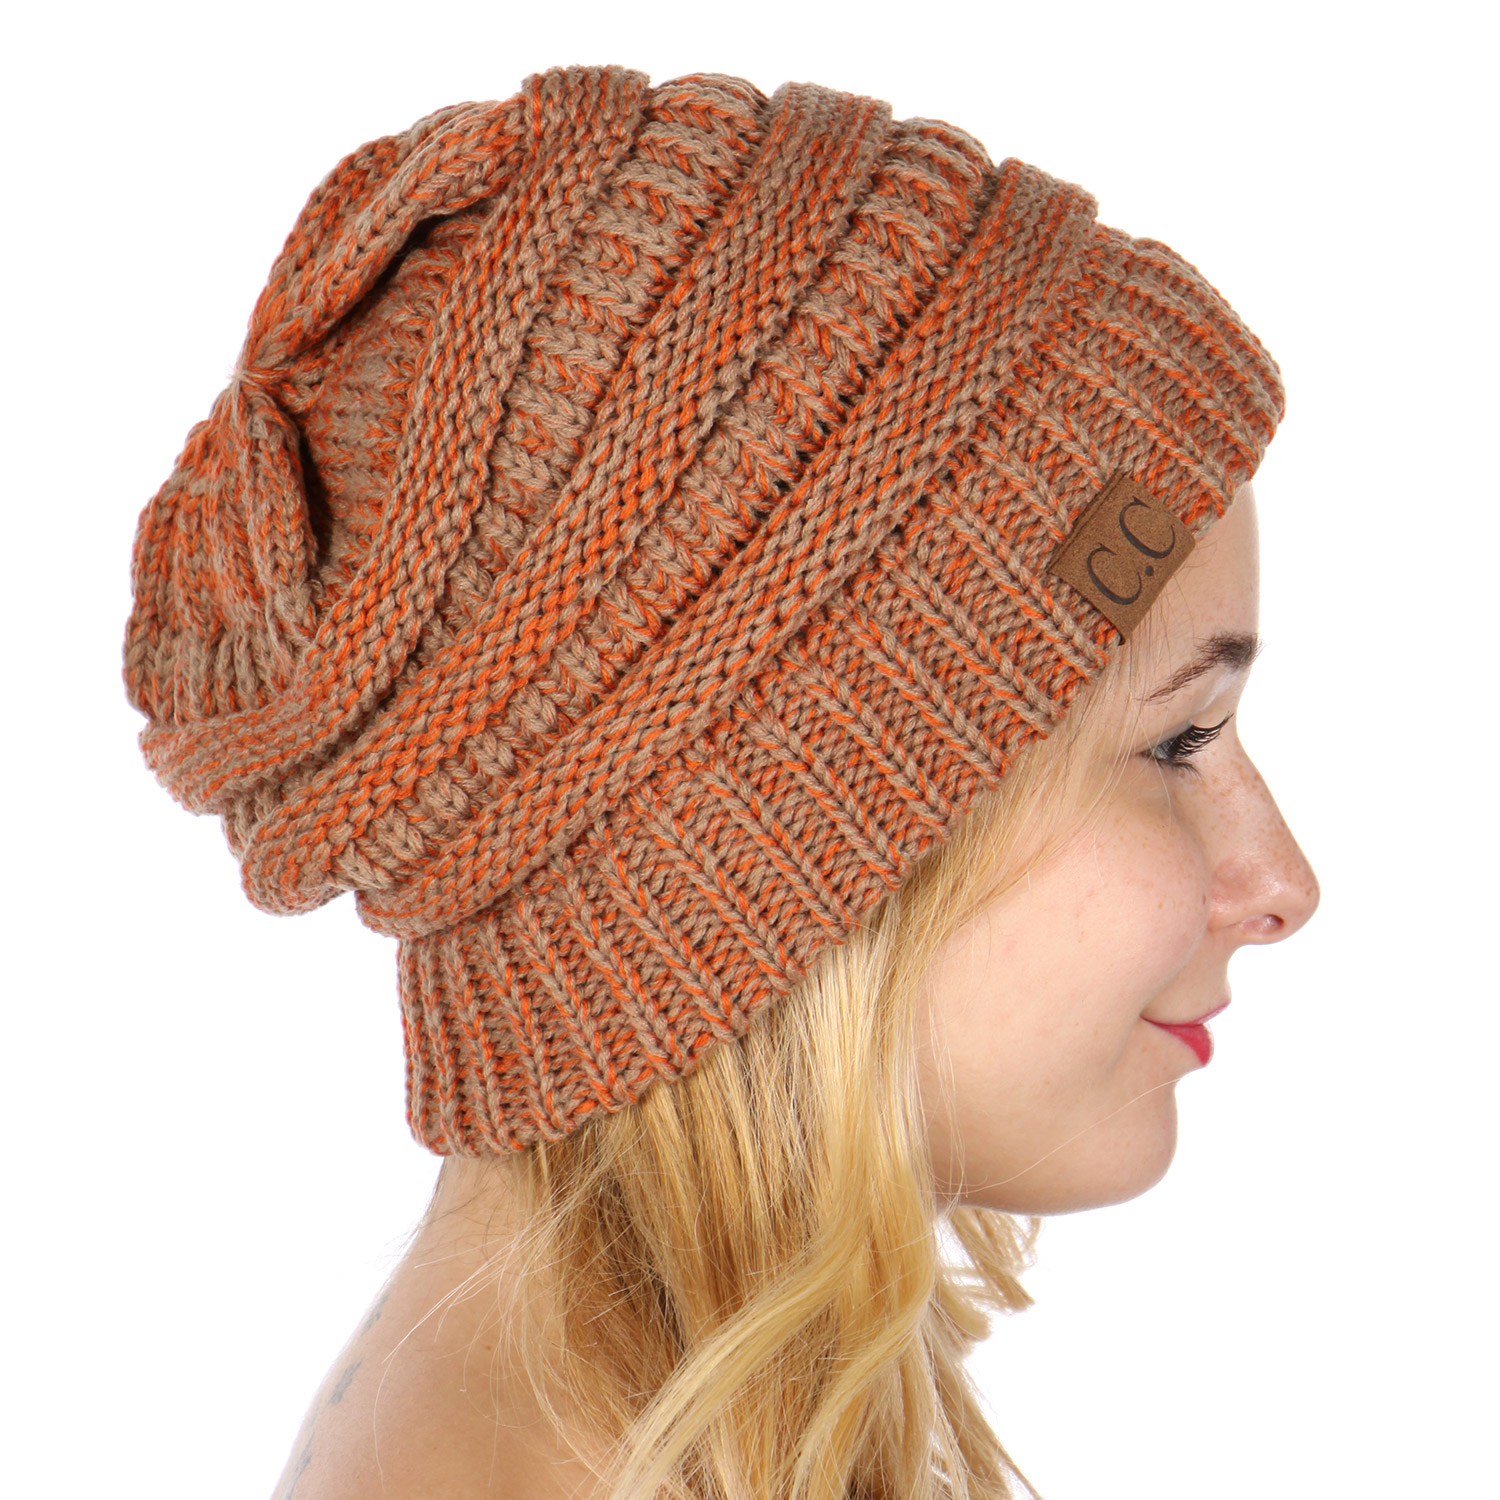 O20 Marled ribbed knit beanie BT Orange 69d35de2202